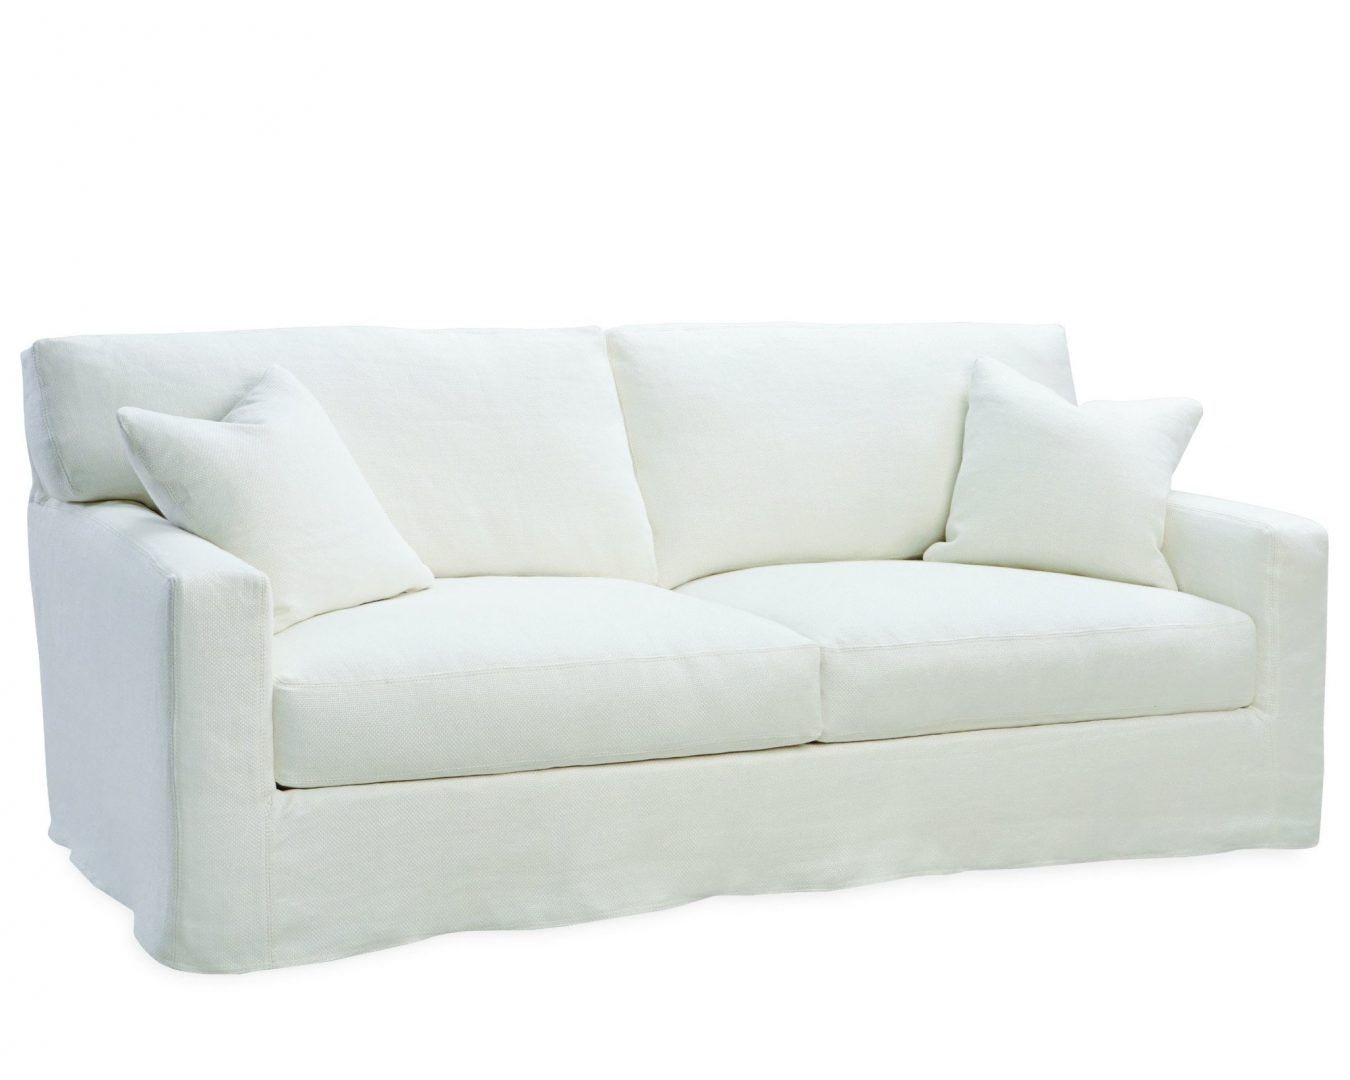 slipcovers for sofa beds high quality futon bed lee c5285 03 slipcover schreiters